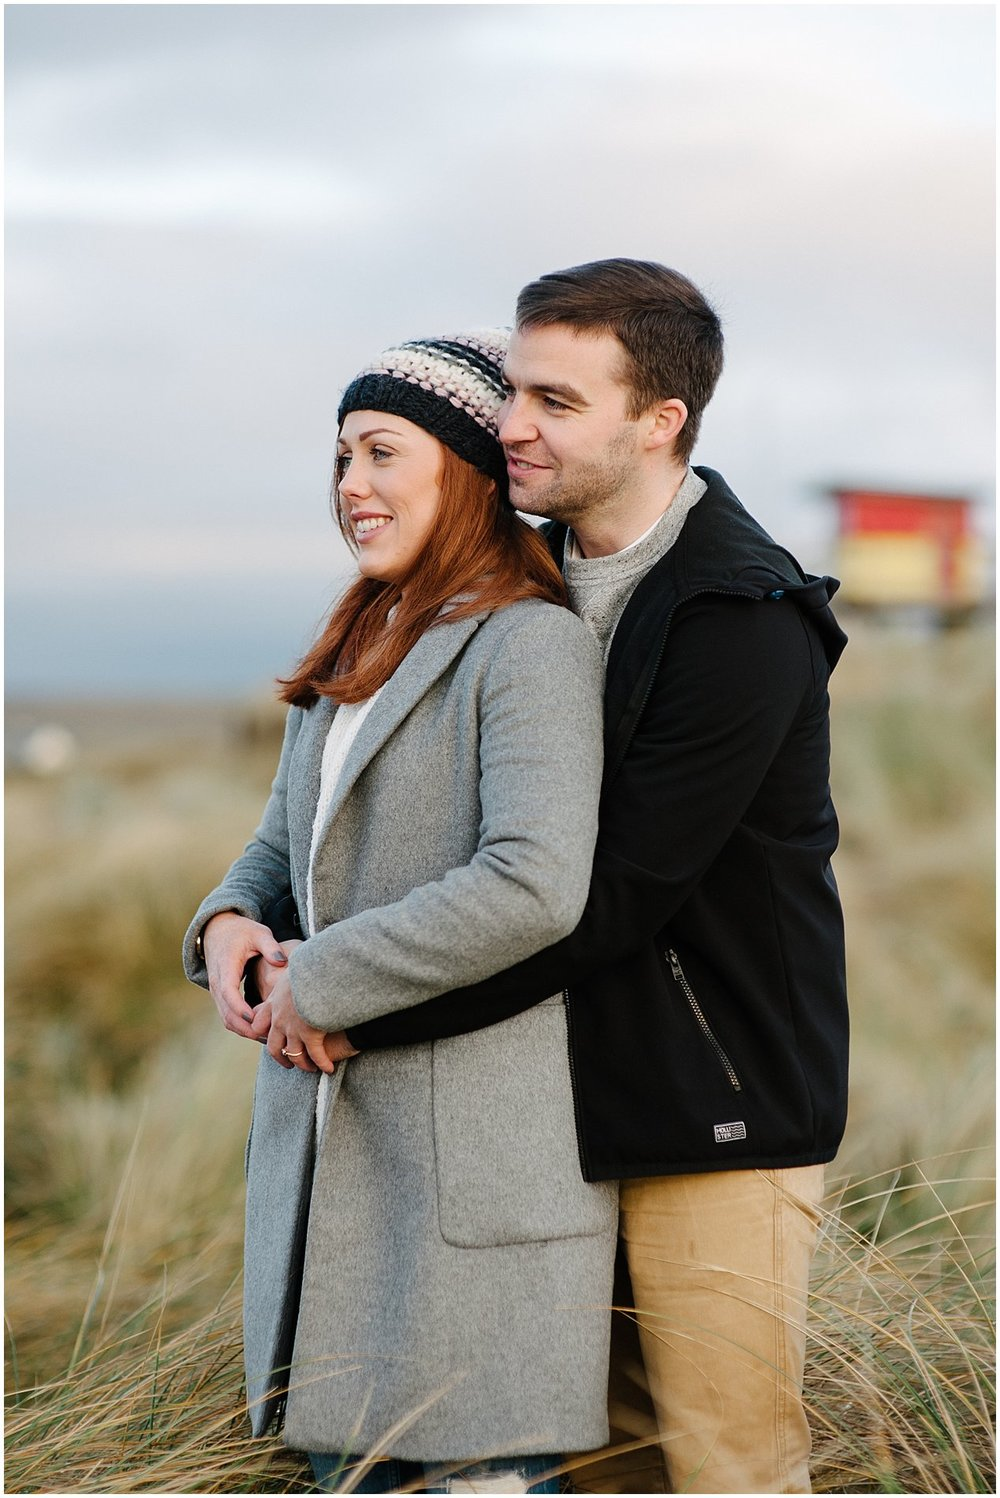 Sinead_Emmet_Rossnowlagh_Beach_pre_wedding_jude_browne_photography_0005.jpg